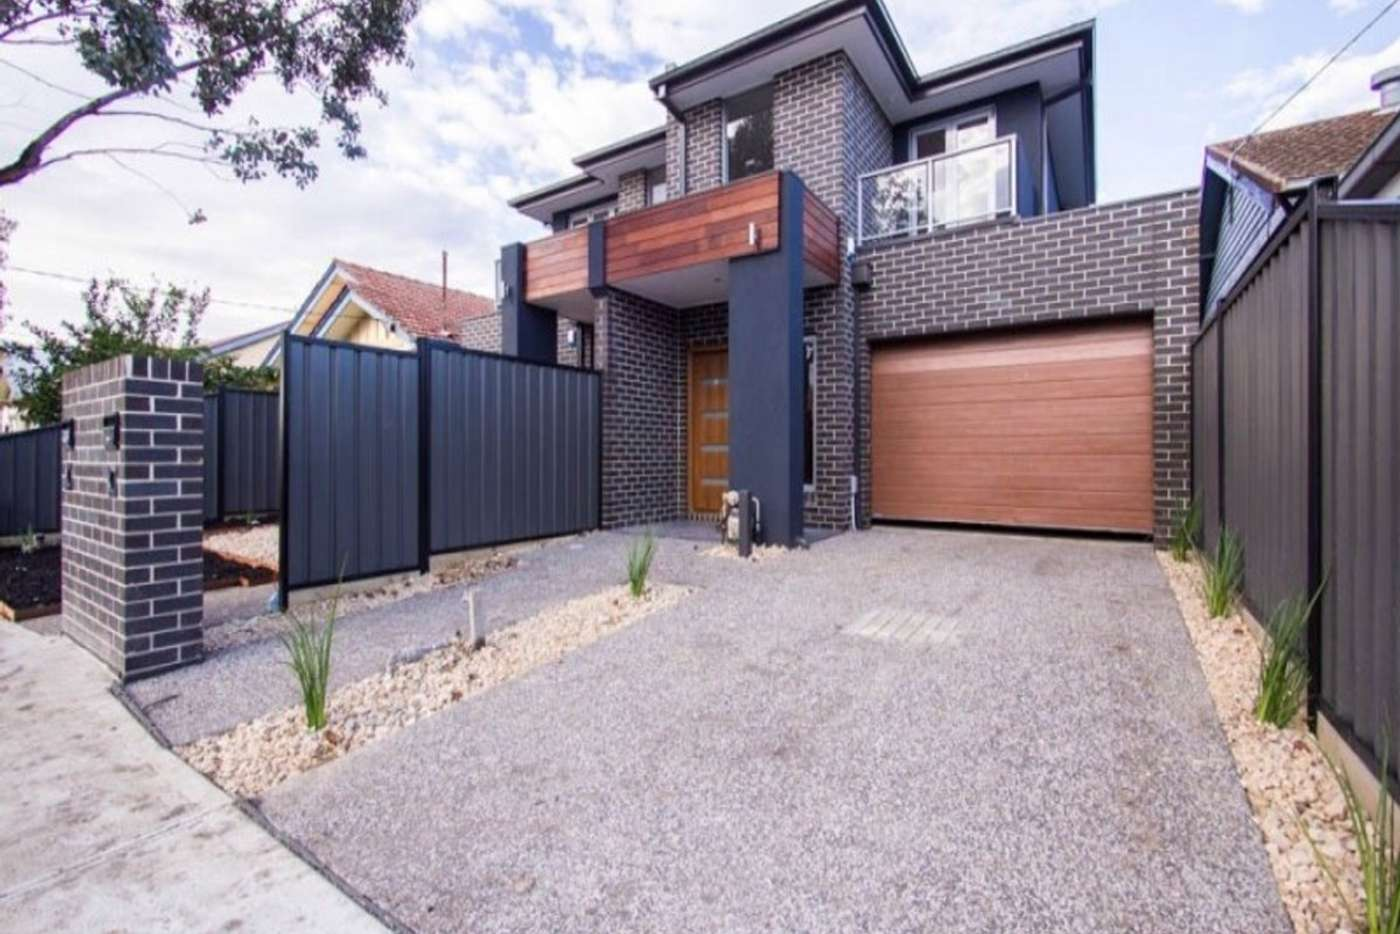 Main view of Homely house listing, 1/44 Stawell Street, Coburg VIC 3058